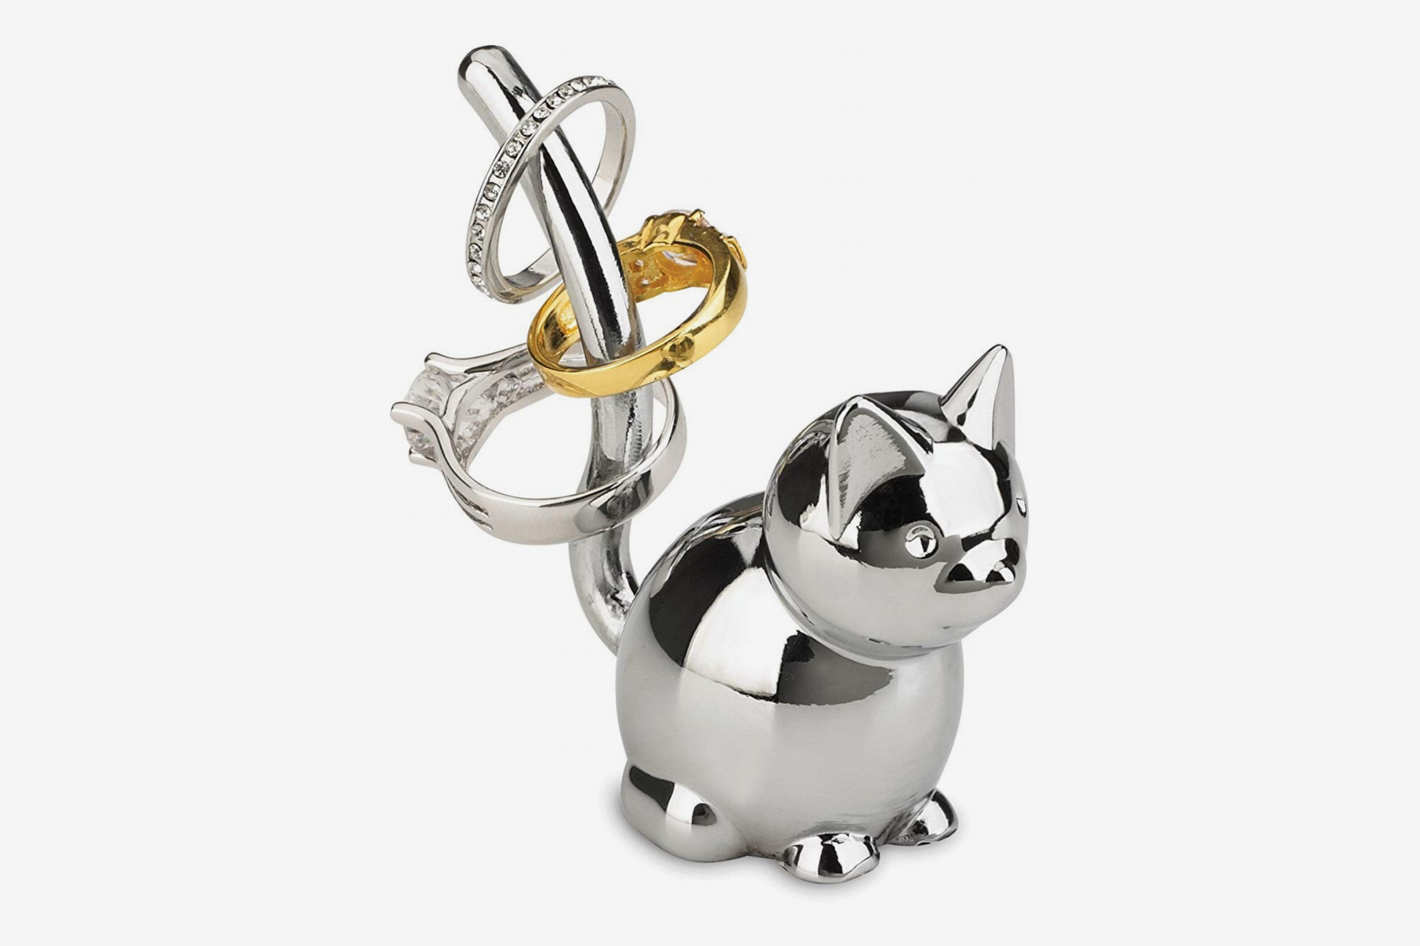 Umbra Zoola Ring Holder, Chrome